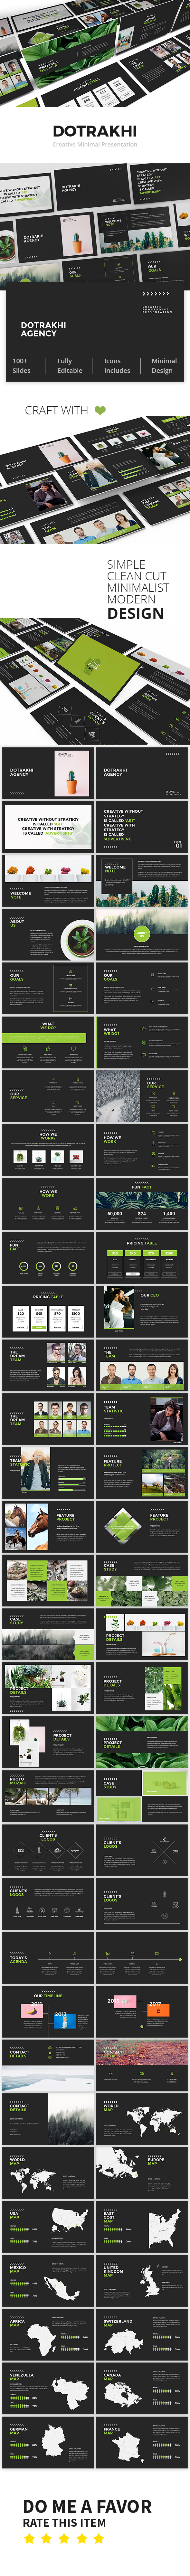 Dotrakhi - Creative Minimal Google Slide Template - Google Slides Presentation Templates